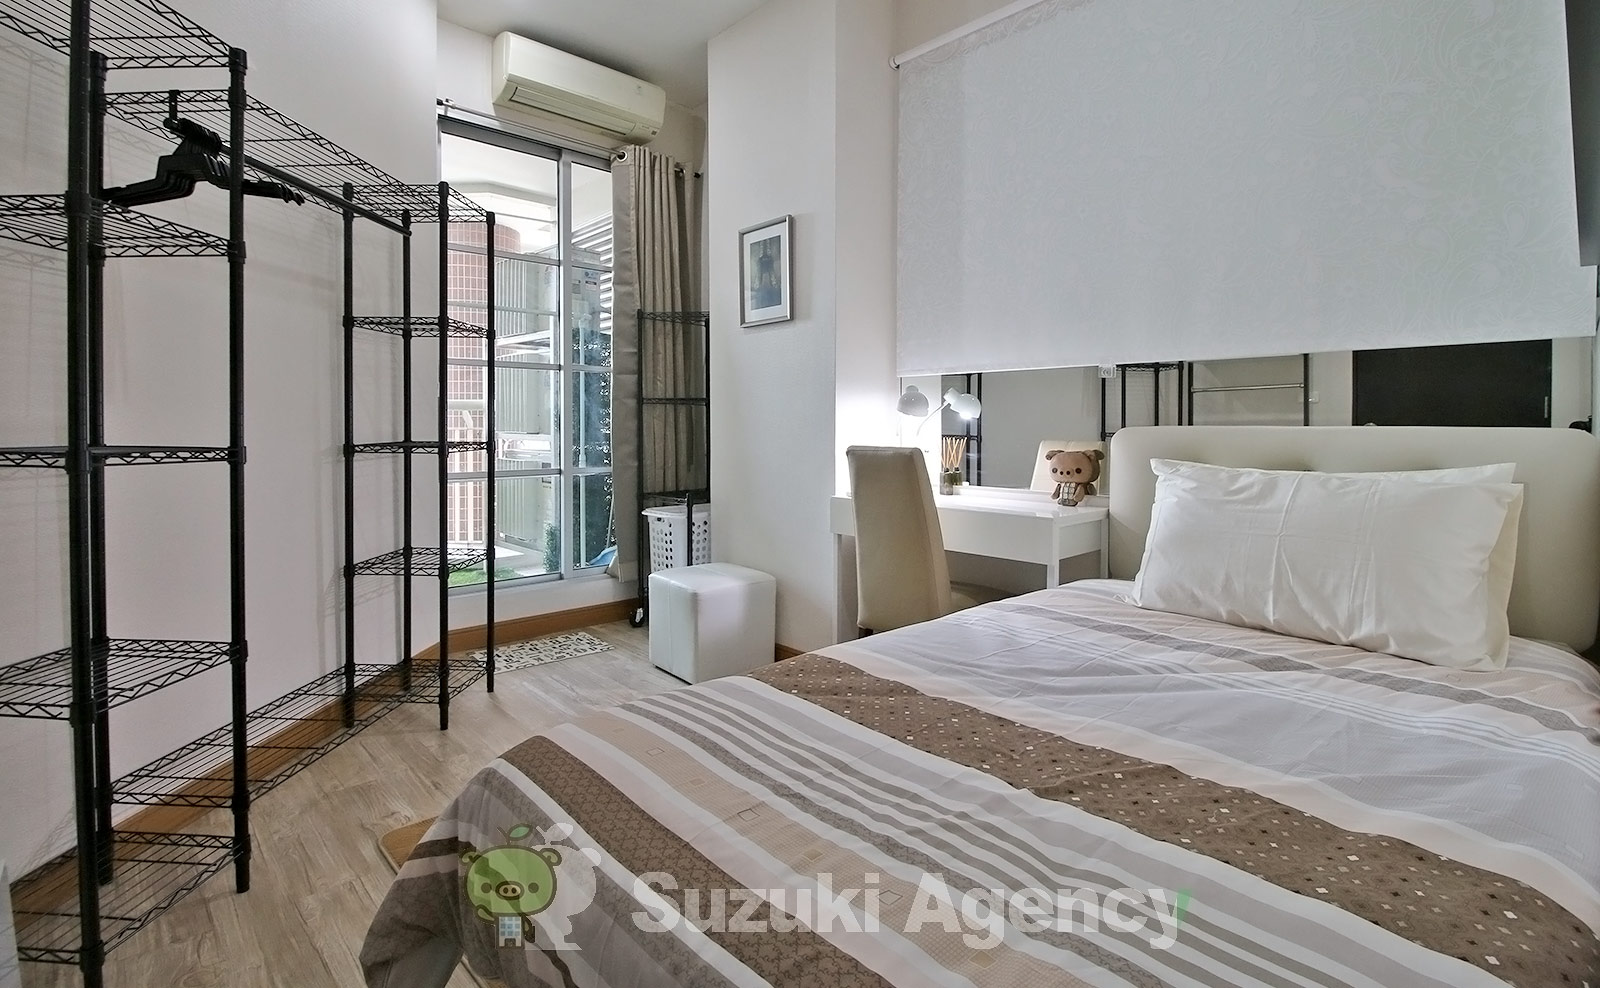 Citi Smart Condo:2Bed Room Photos No.10